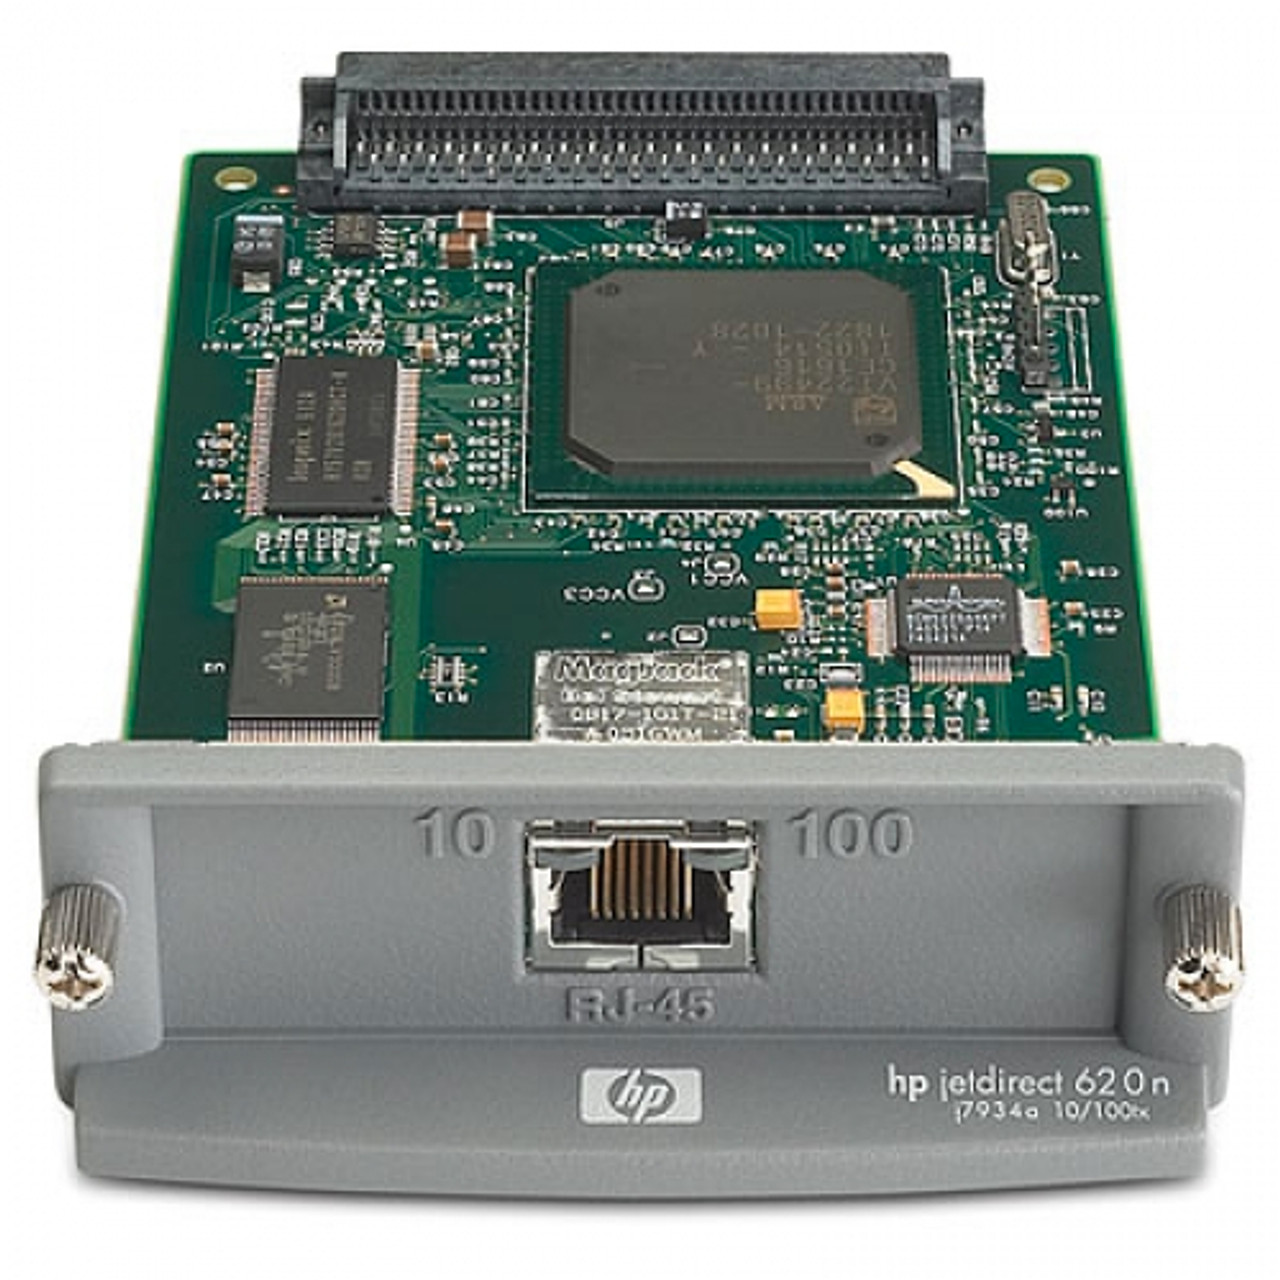 HP JetDirect 620n Ethernet Print server - EIO - Updated